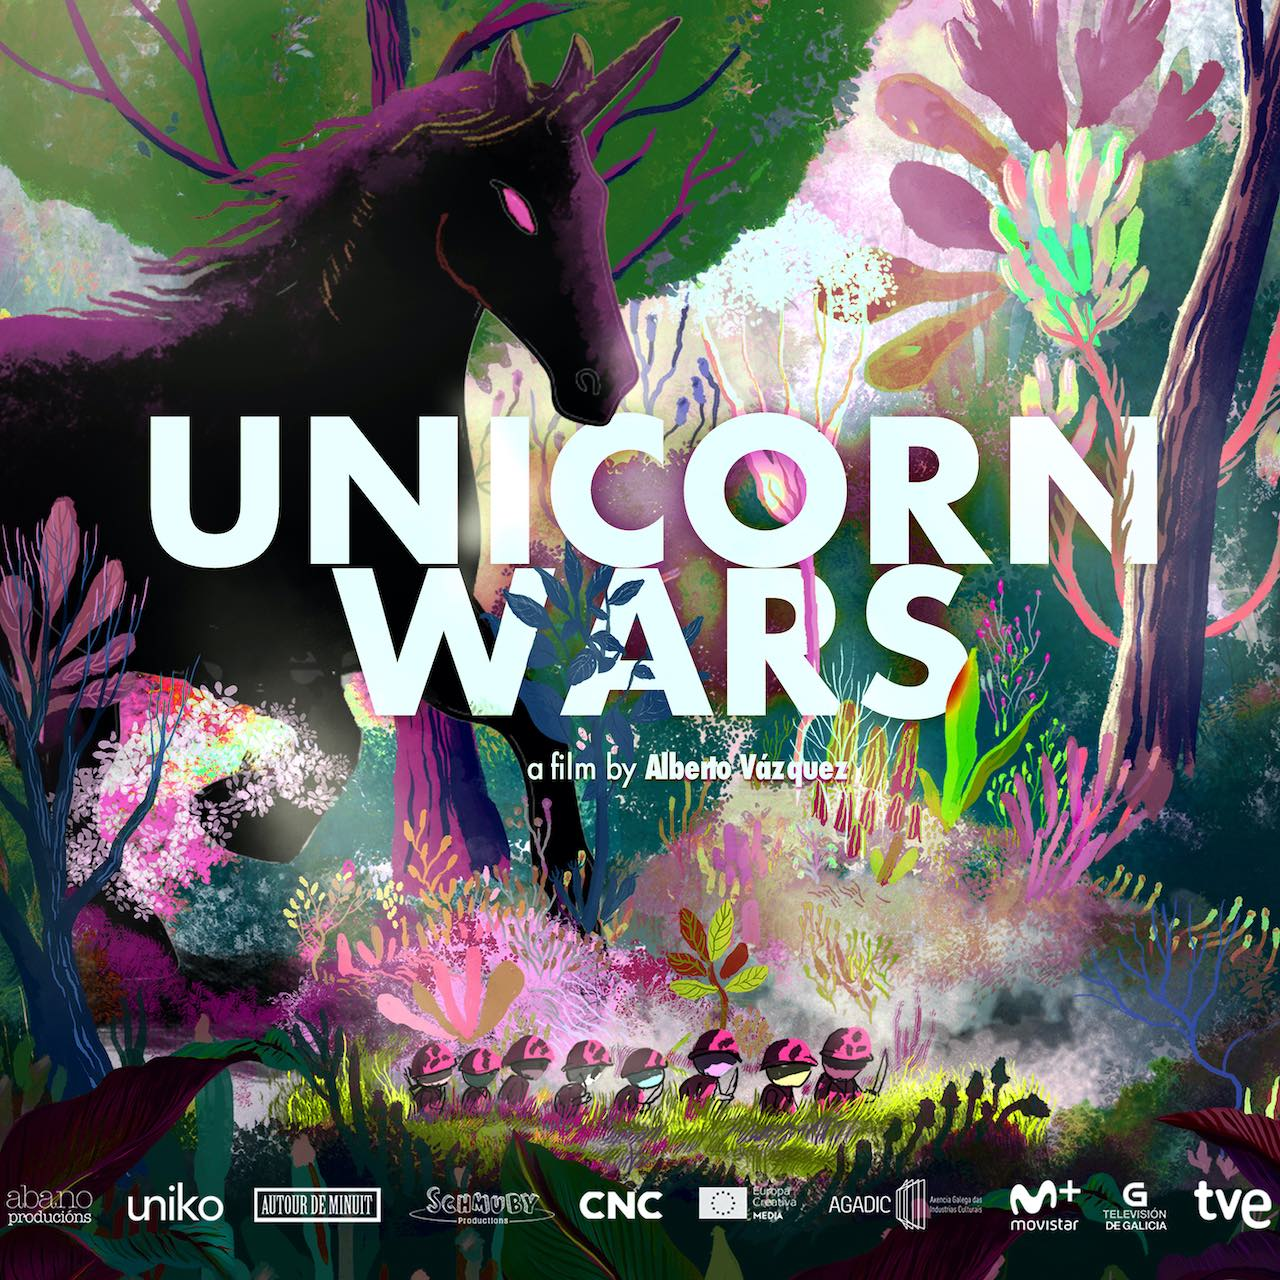 Unicorn Wars